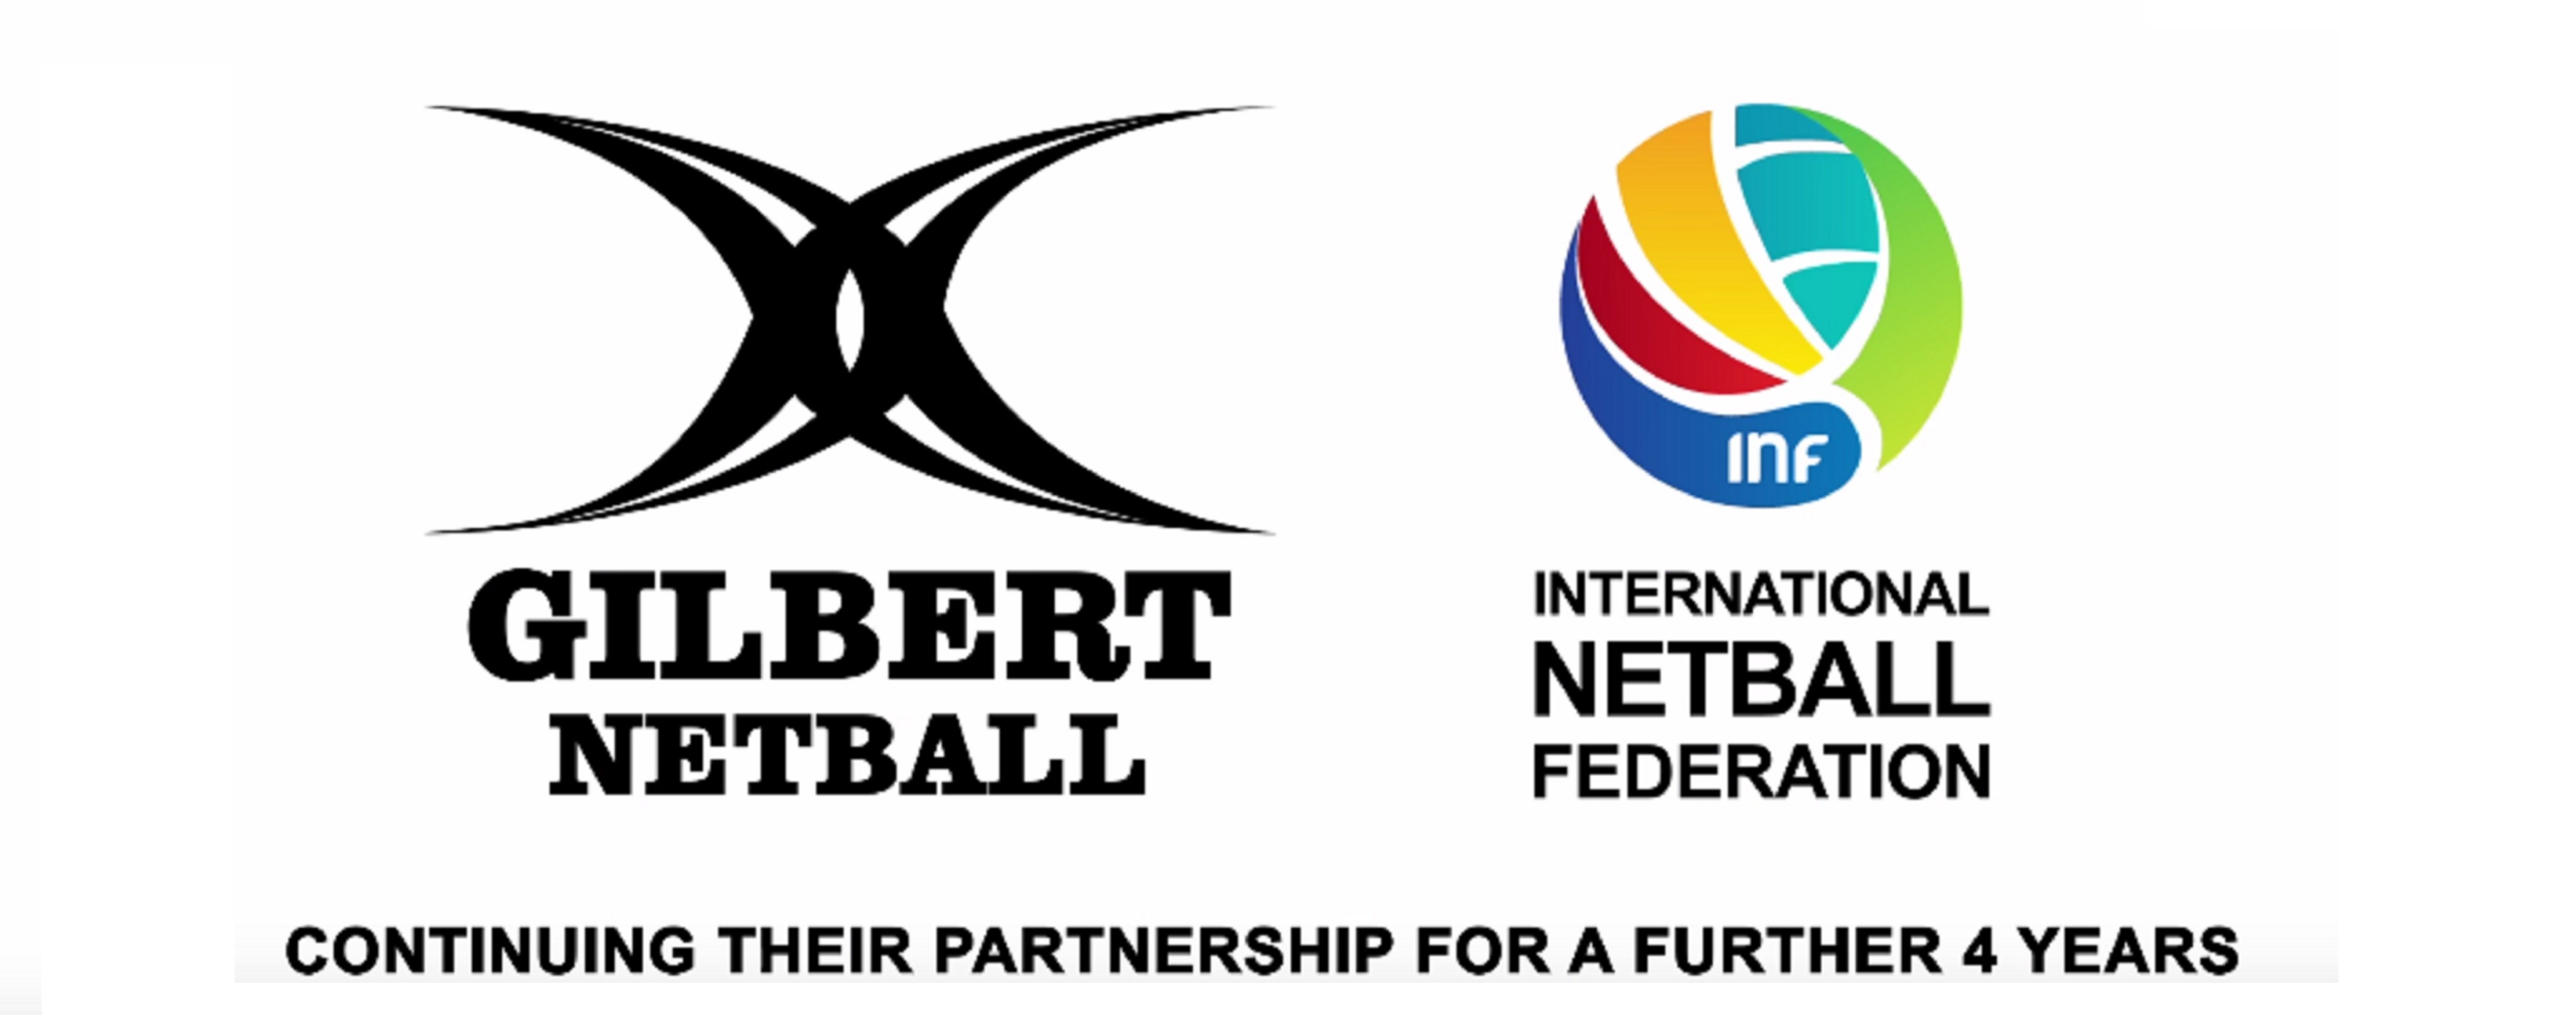 gilbert-inf-partnership